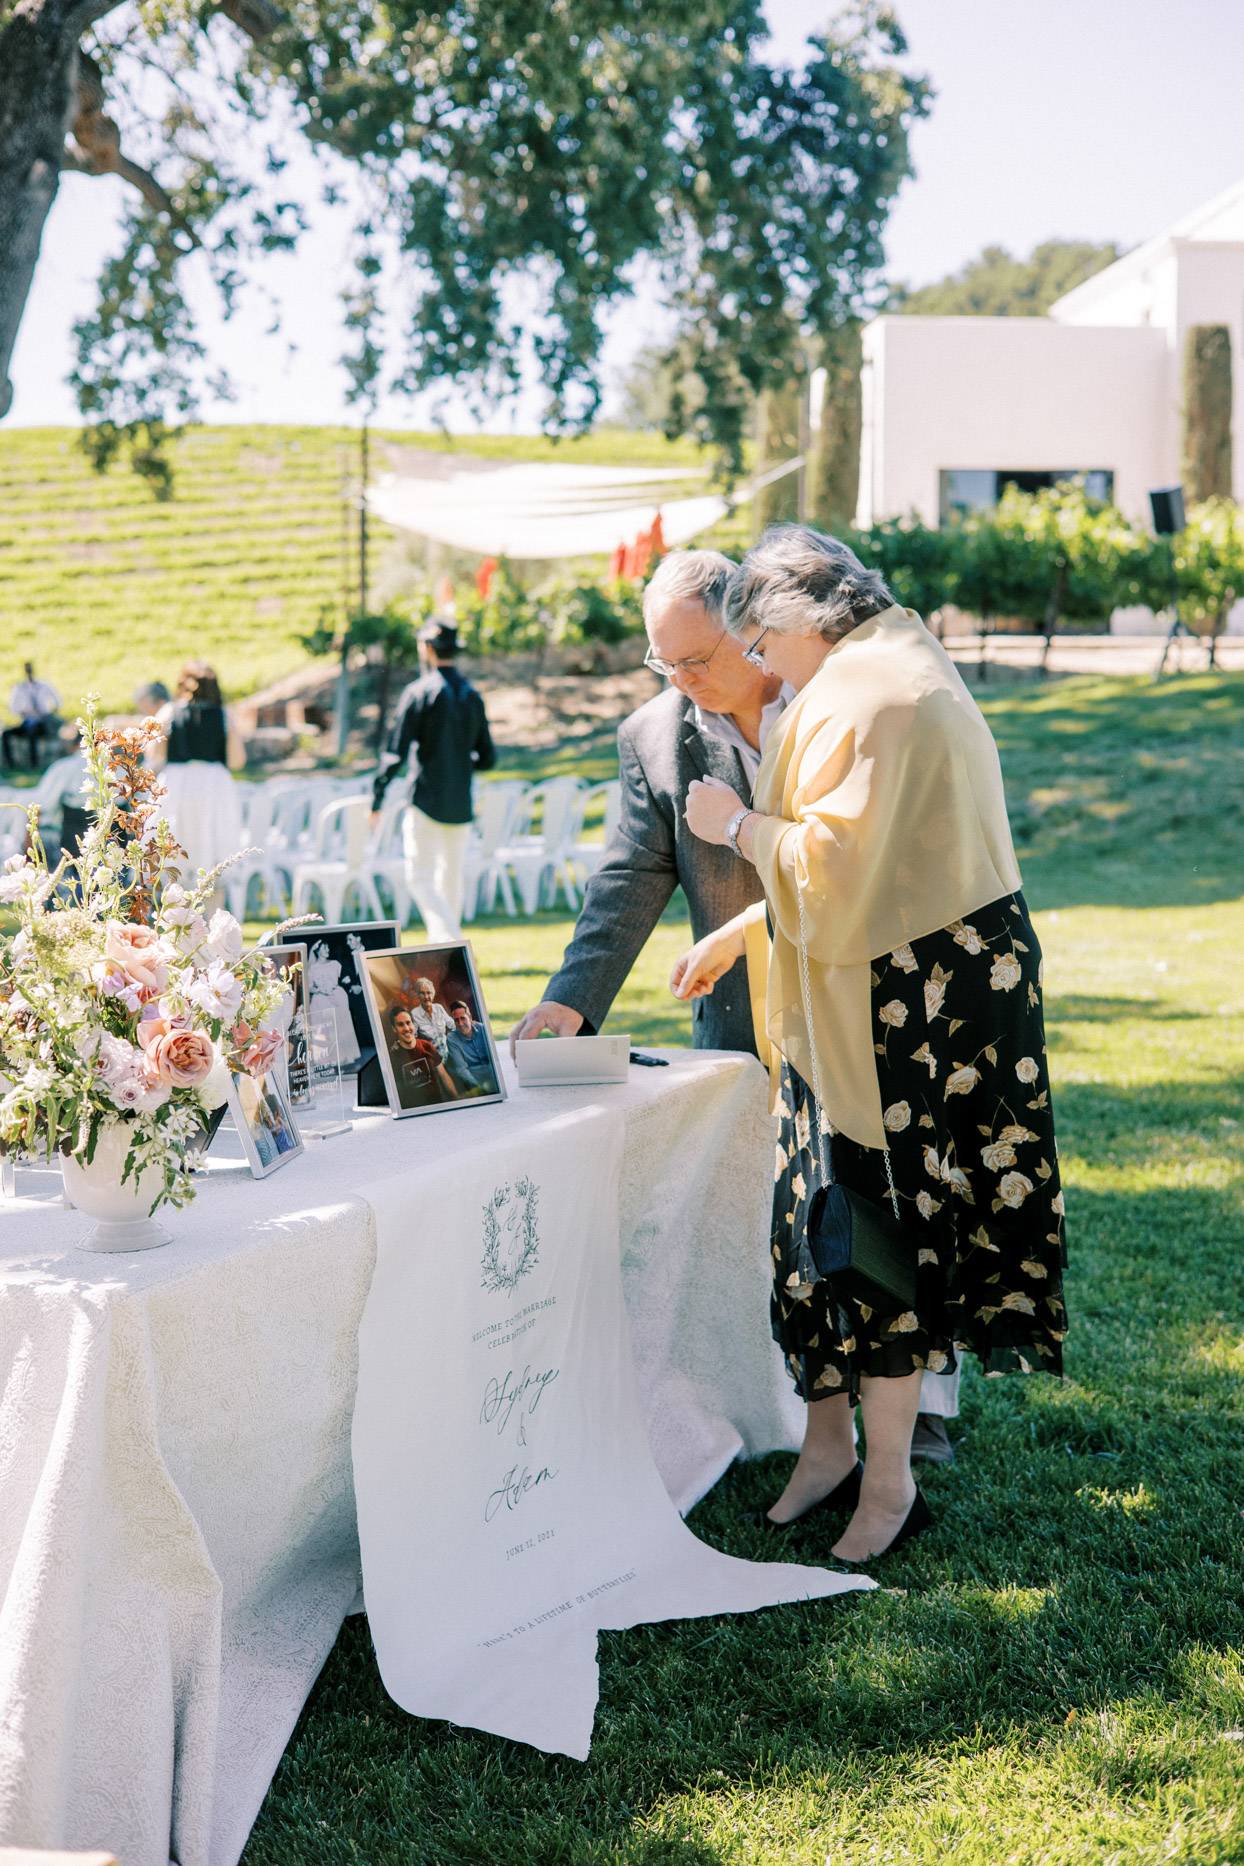 older couple standing at wedding generations table